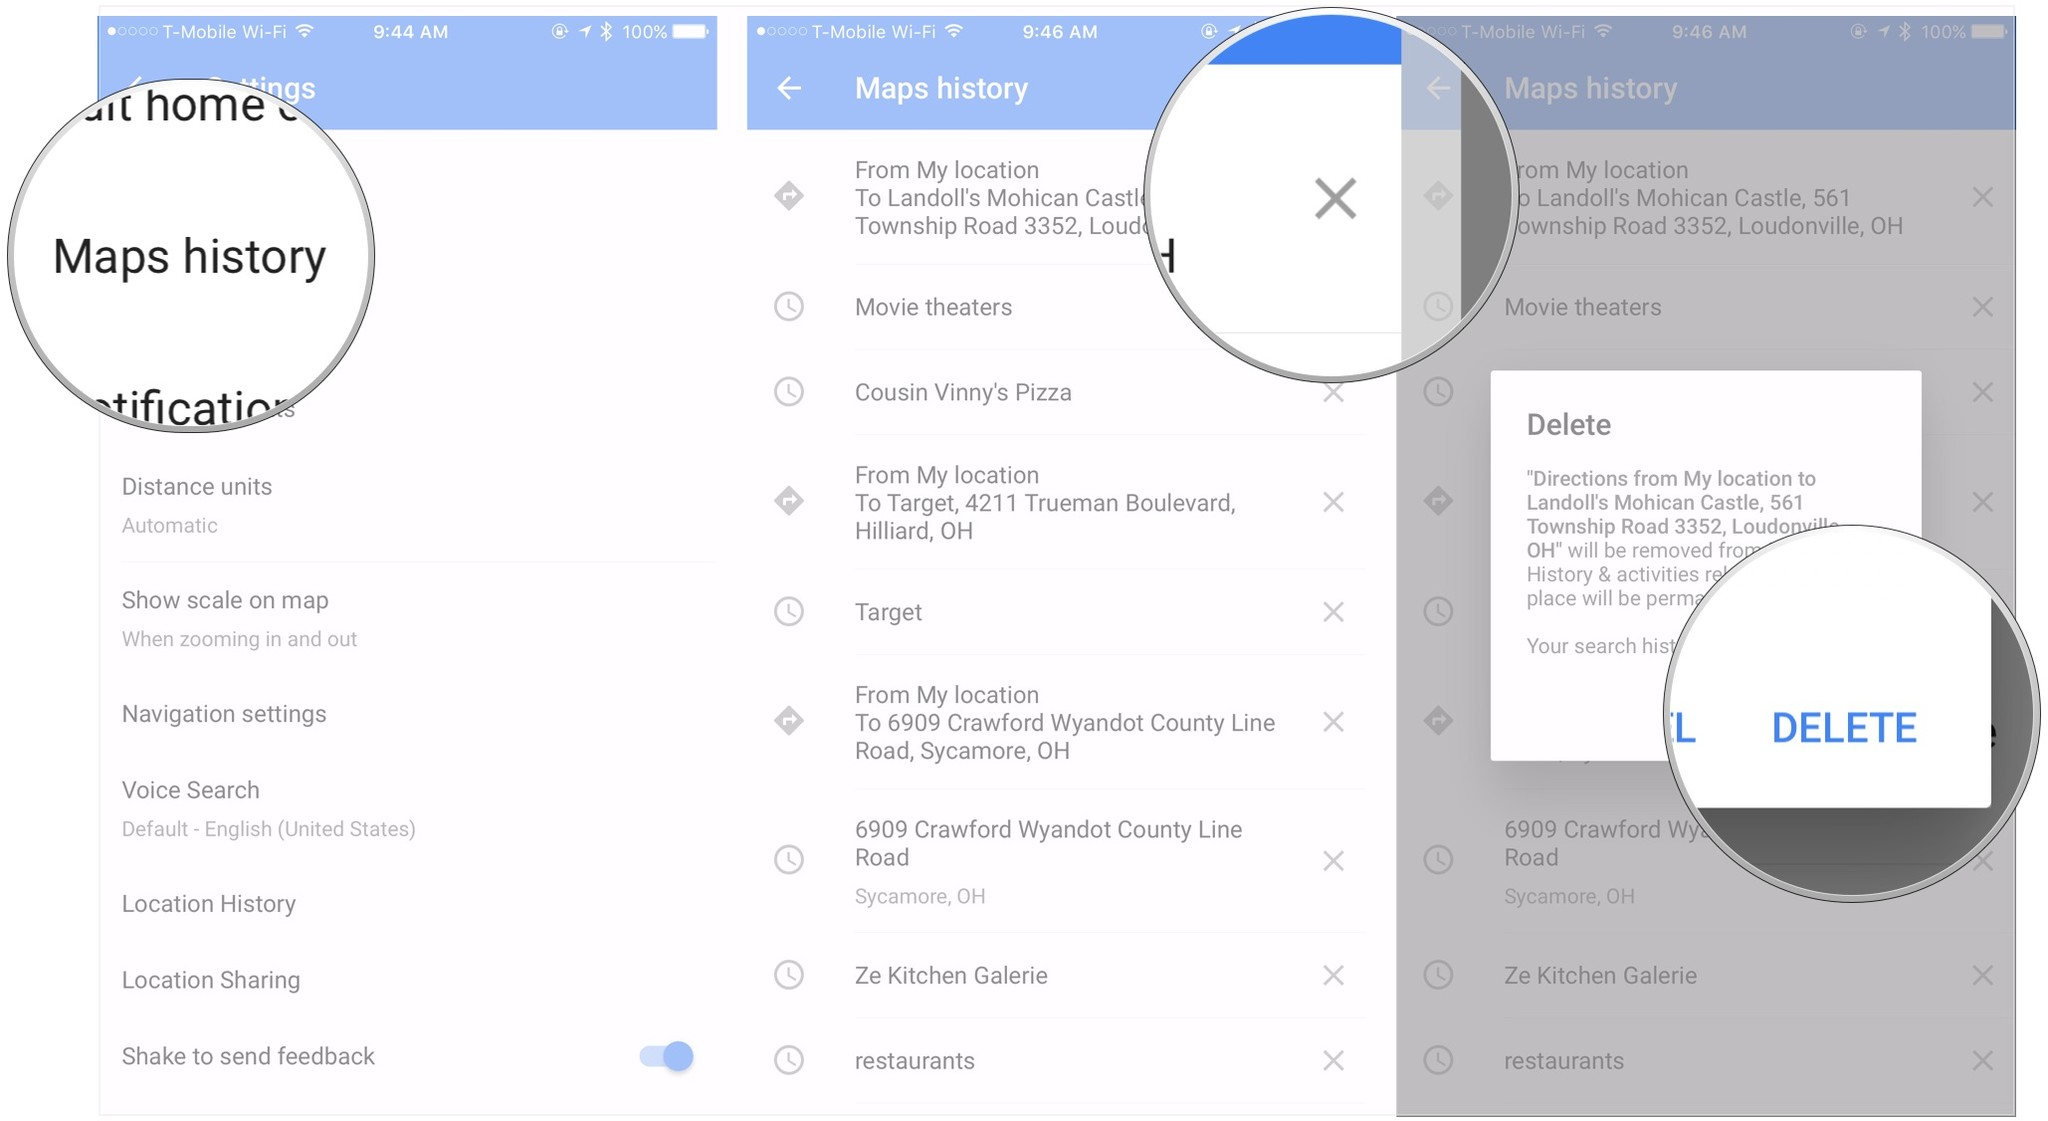 How To Delete Your Search History And Prior Destinations